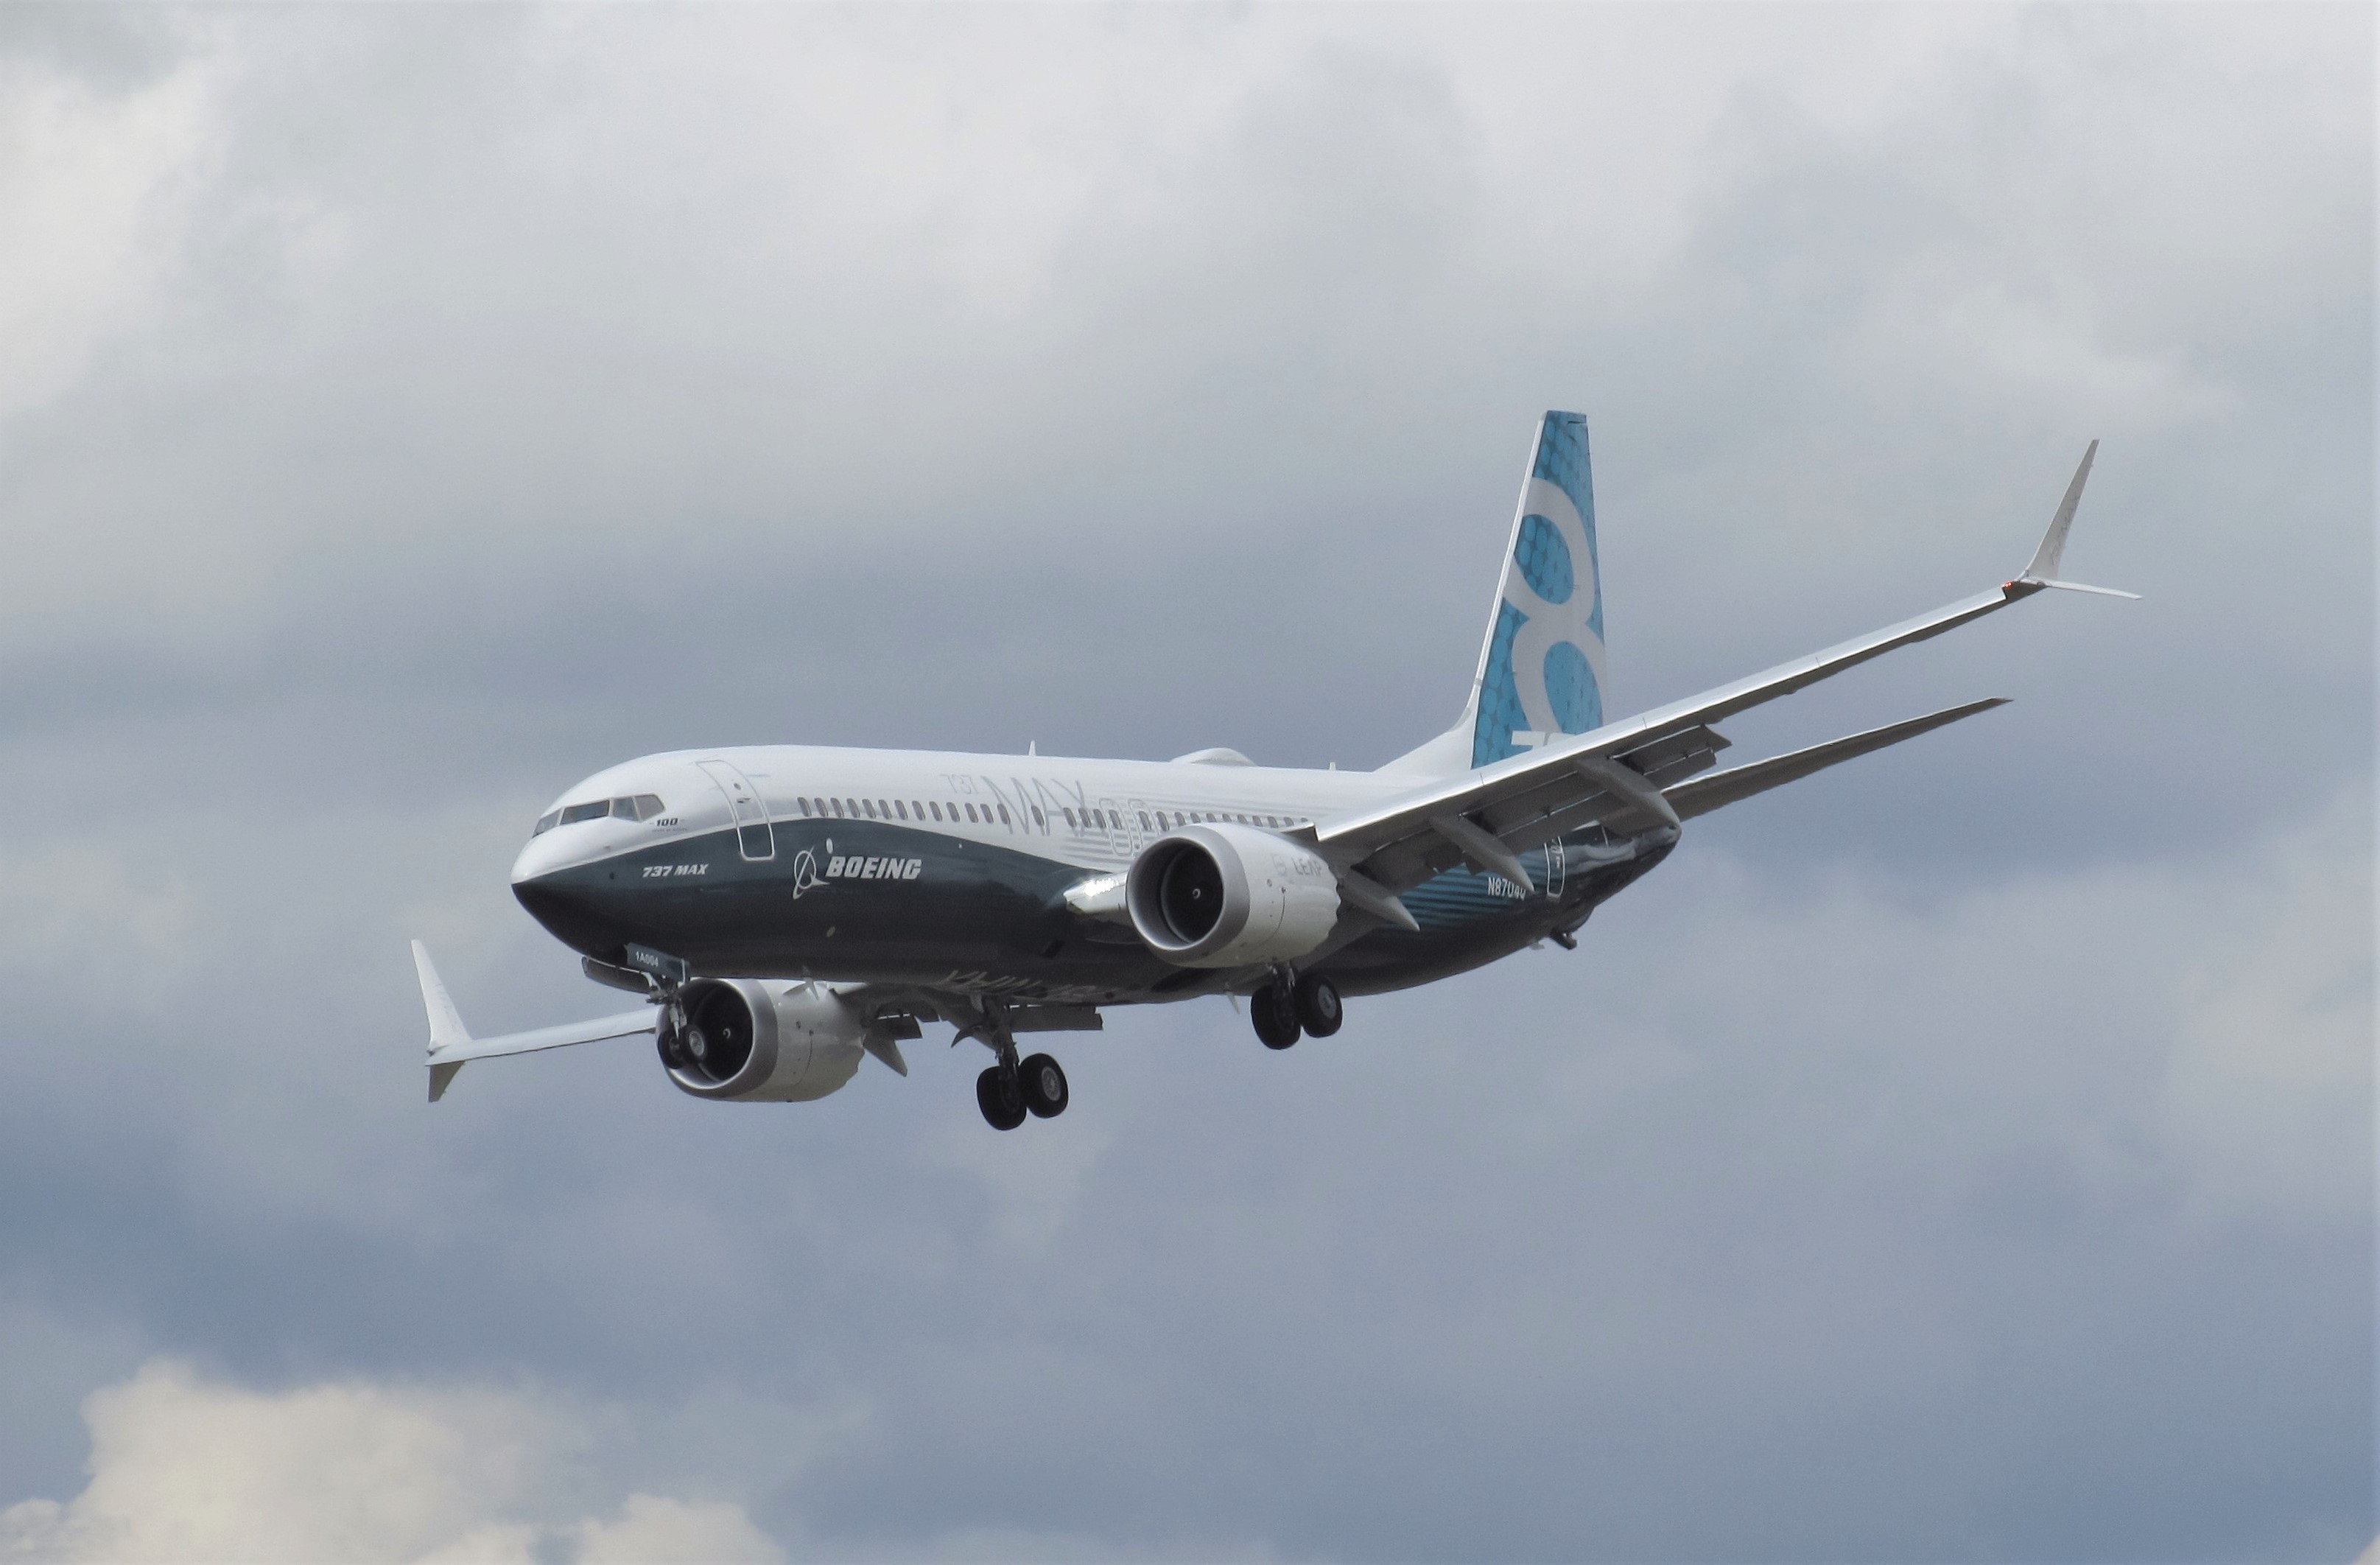 Inspector General slams Boeing for holding back information on 737 Max